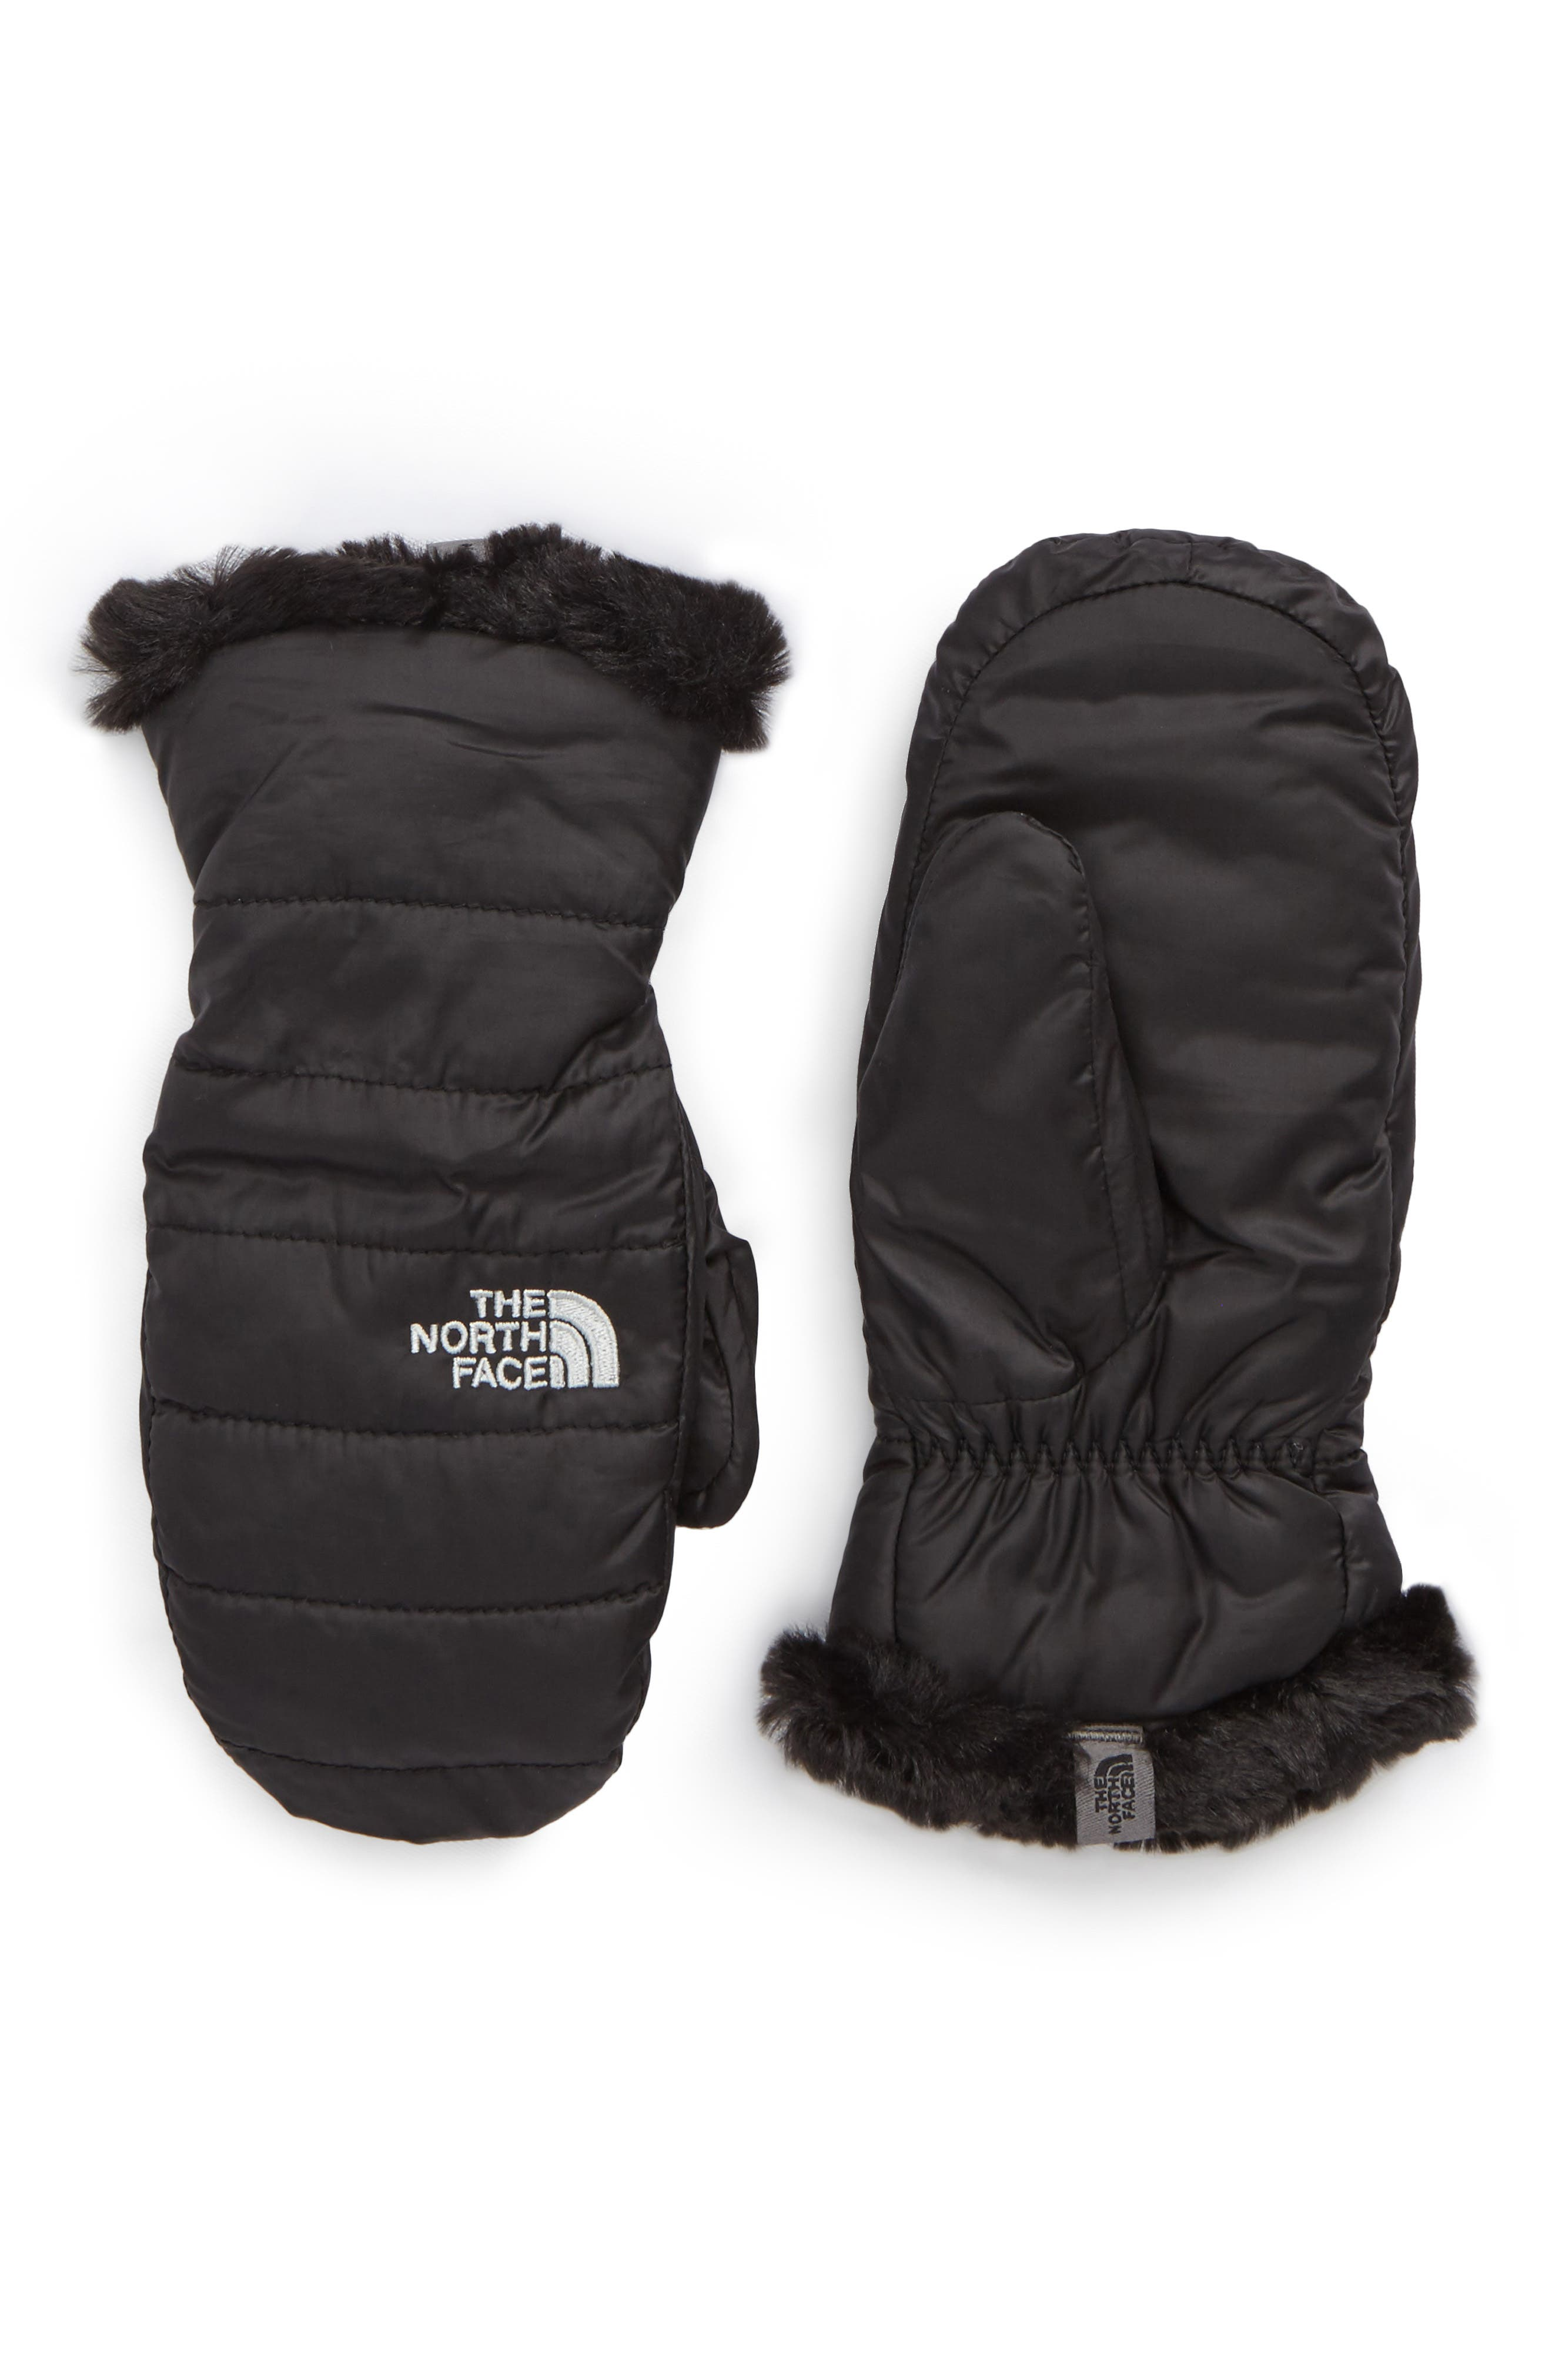 The North Face Mossbud Swirl Reversible Water Resistant Mittens (Girls)